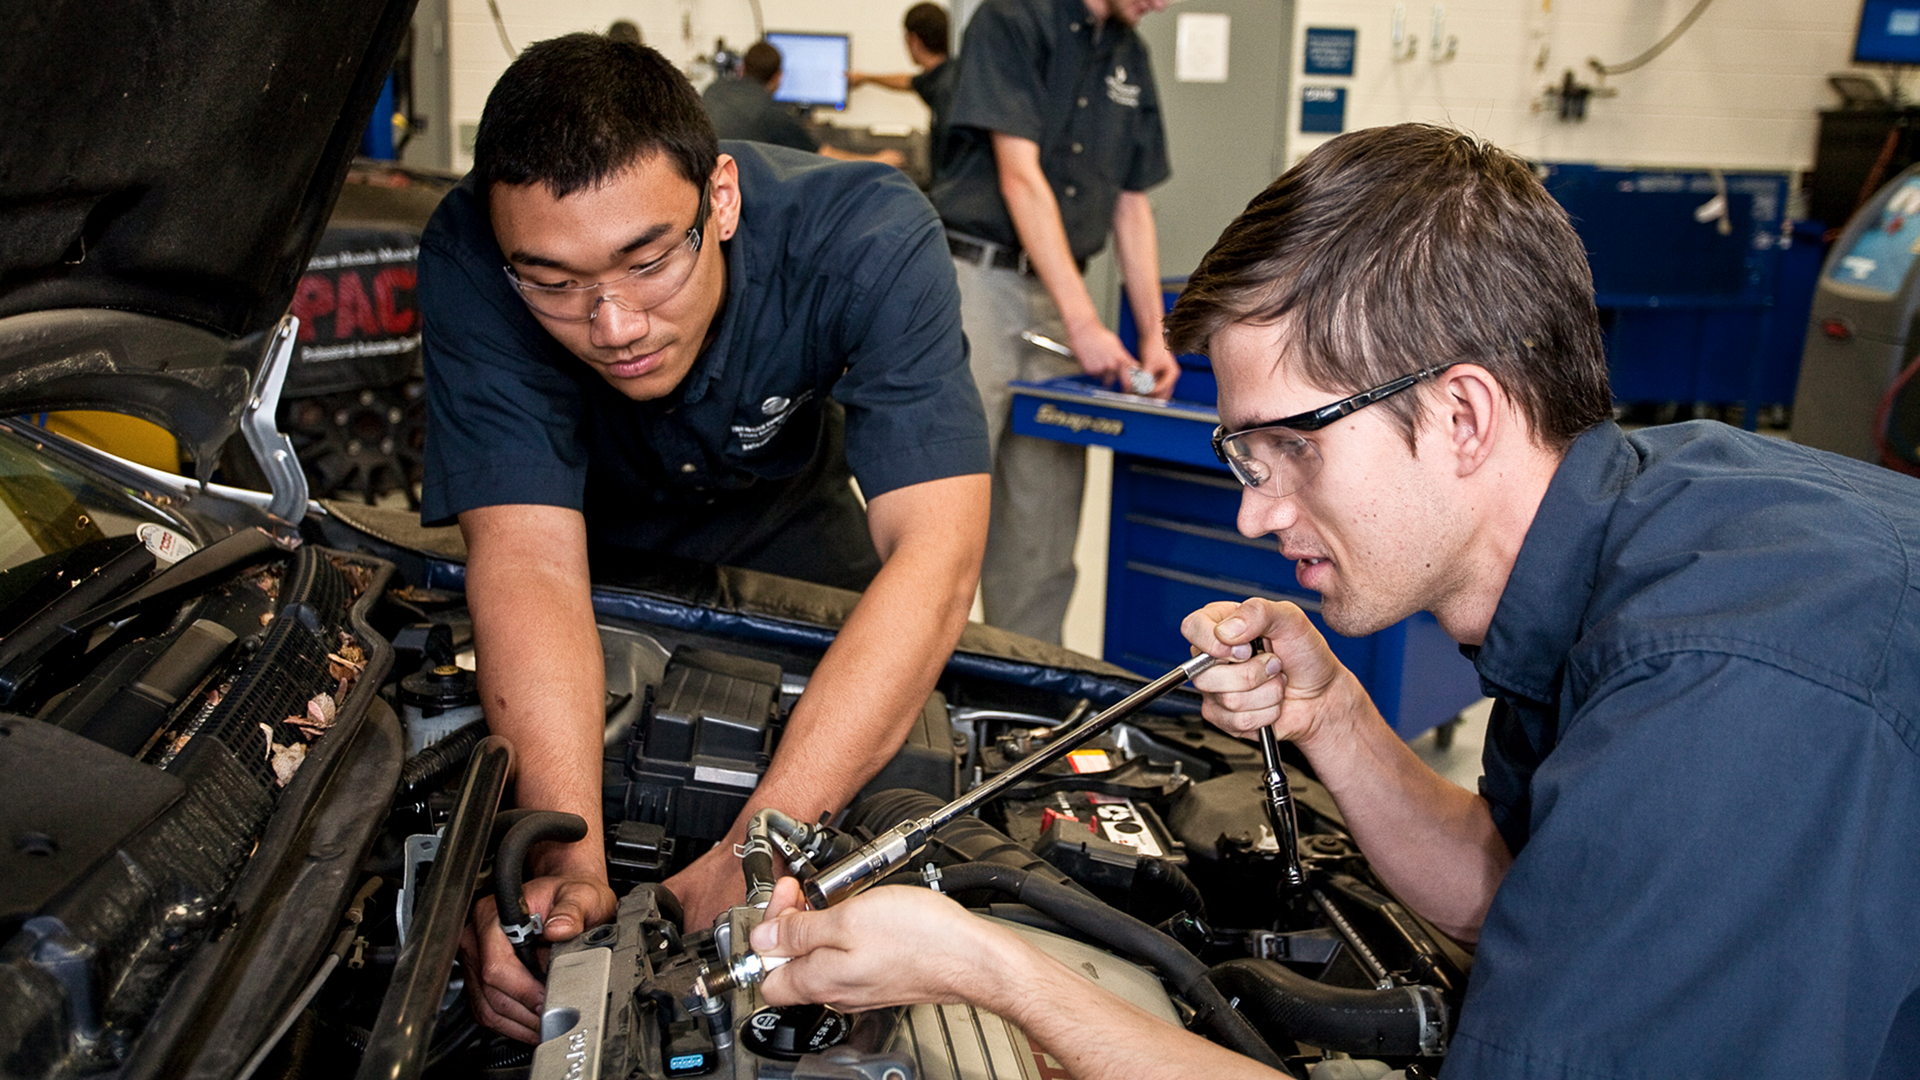 two male students working on a car engine